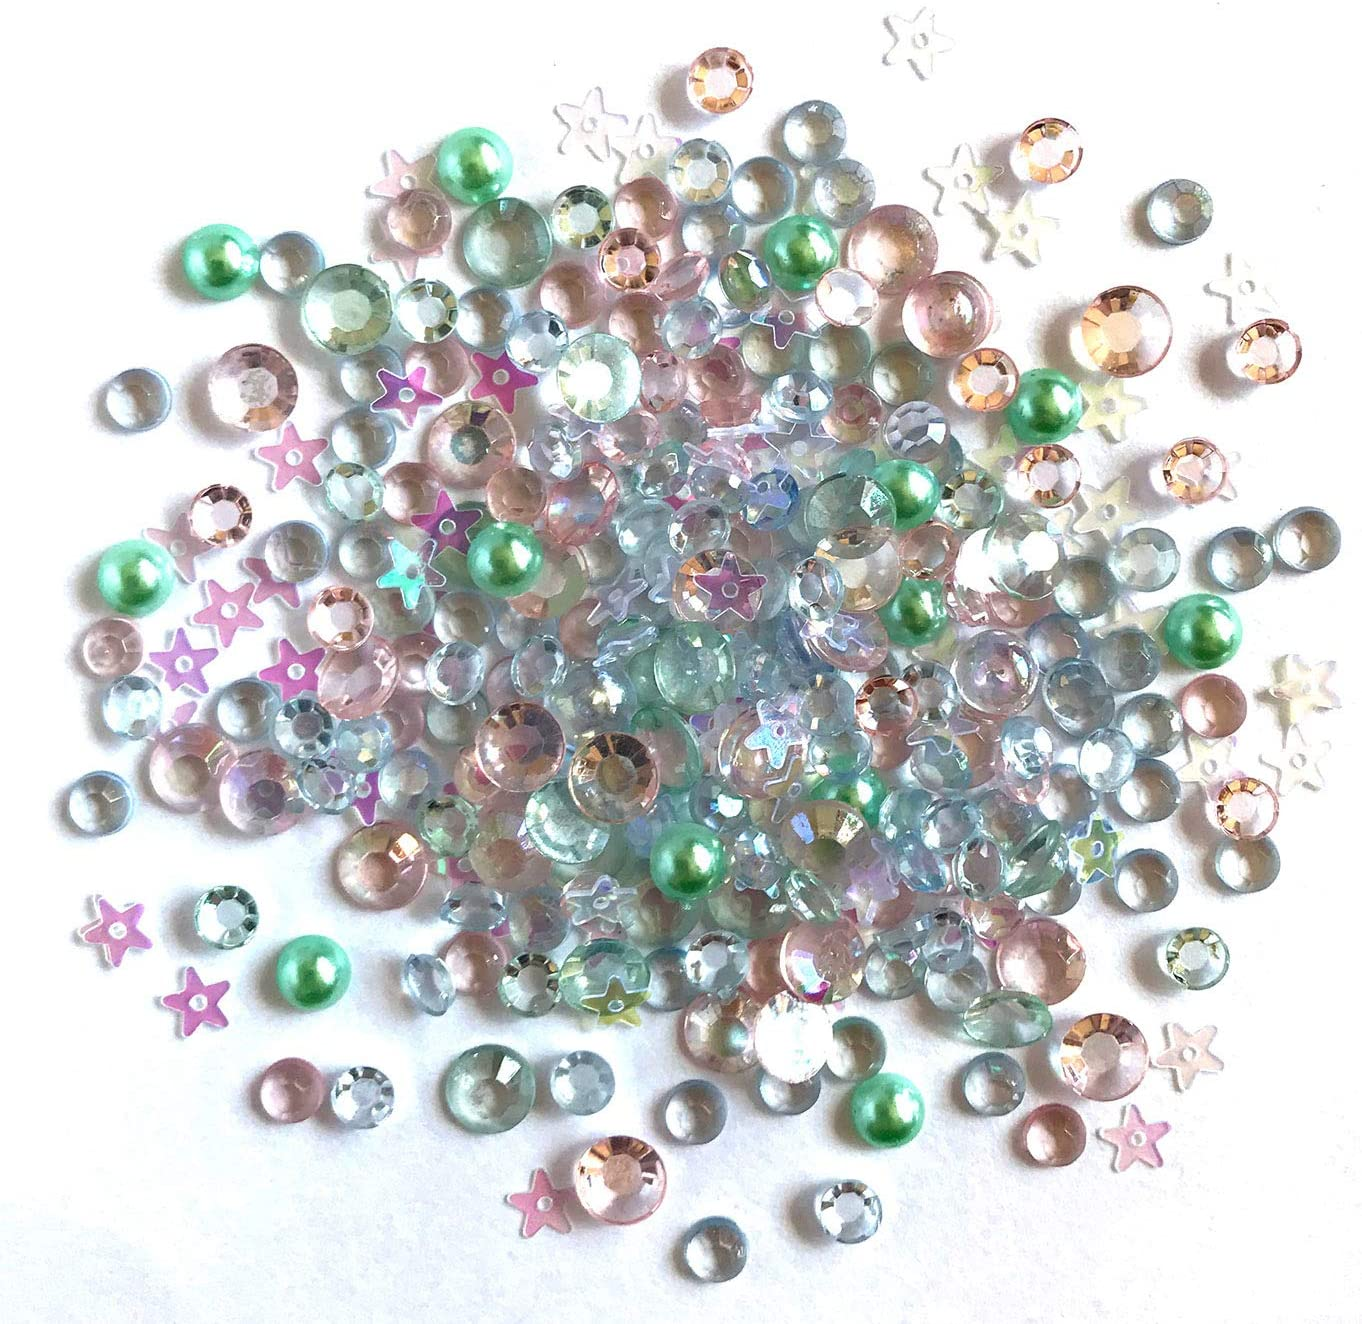 Buttons Galore Sparkling Gemstone Craft Embellishments 500 Pc - All is Calm - Set of 3 Packs